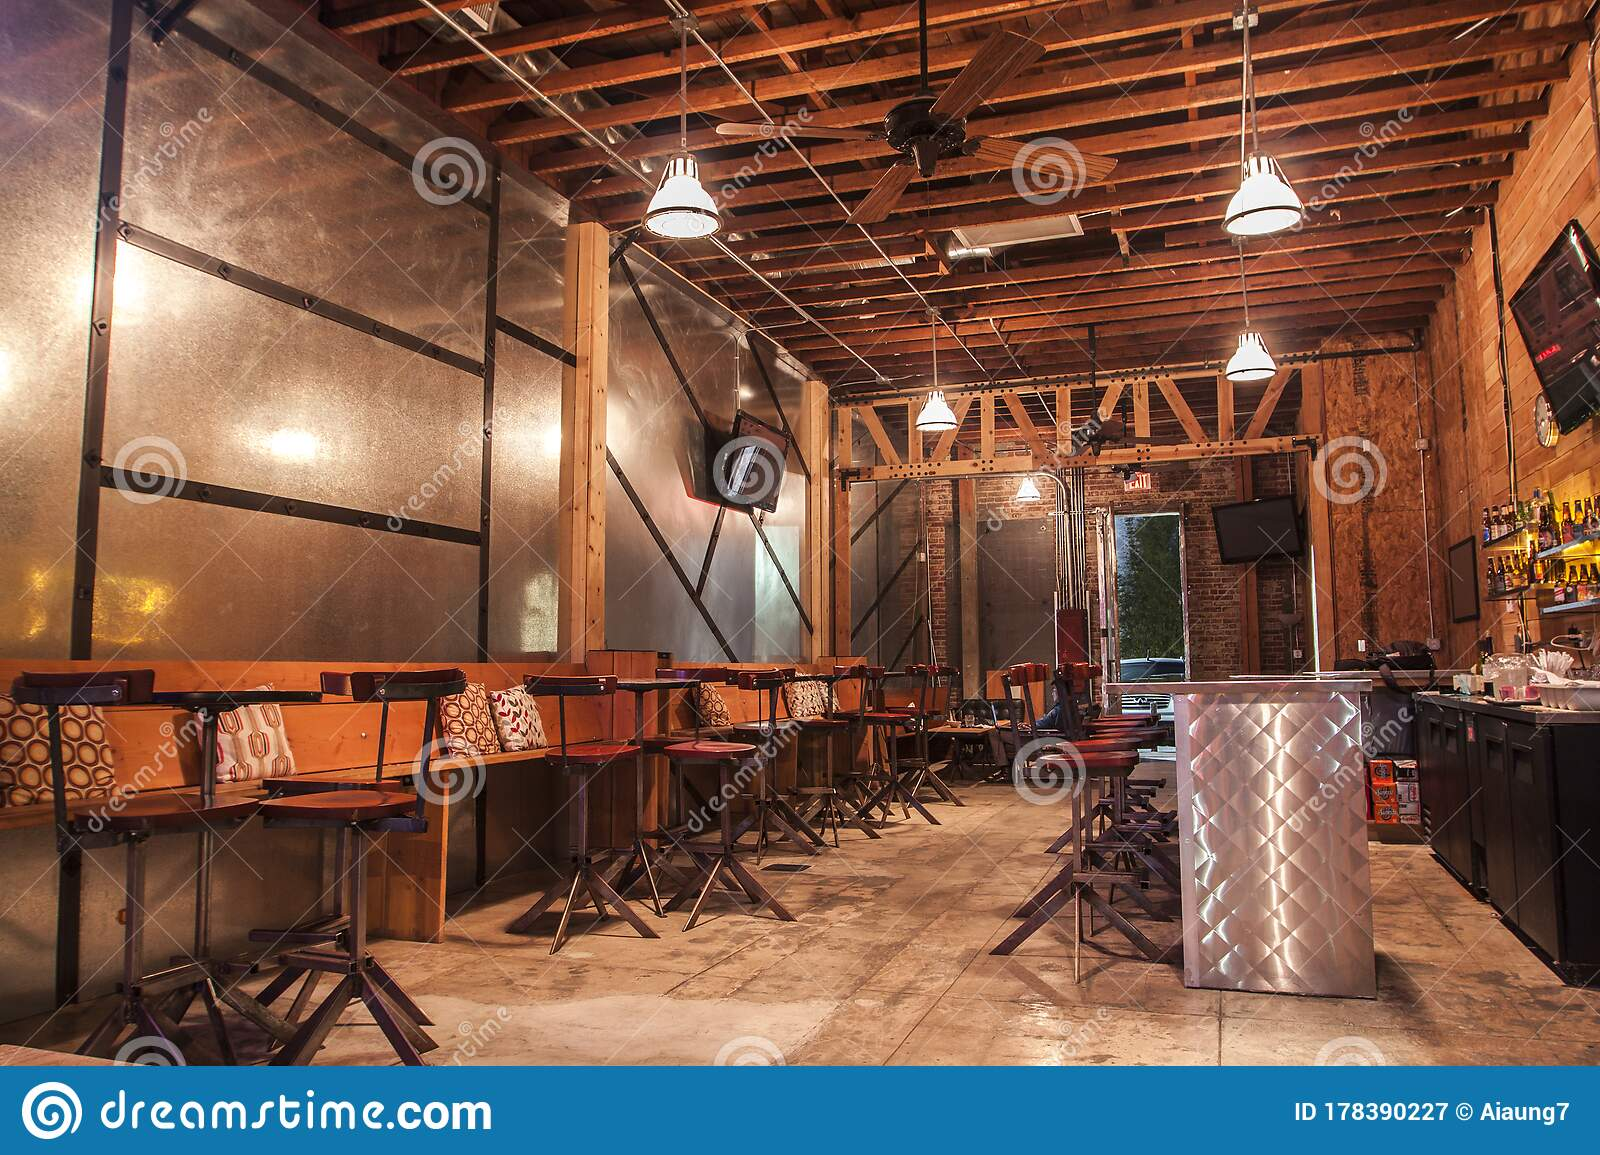 1 744 Industrial Restaurant Bar Photos Free Royalty Free Stock Photos From Dreamstime